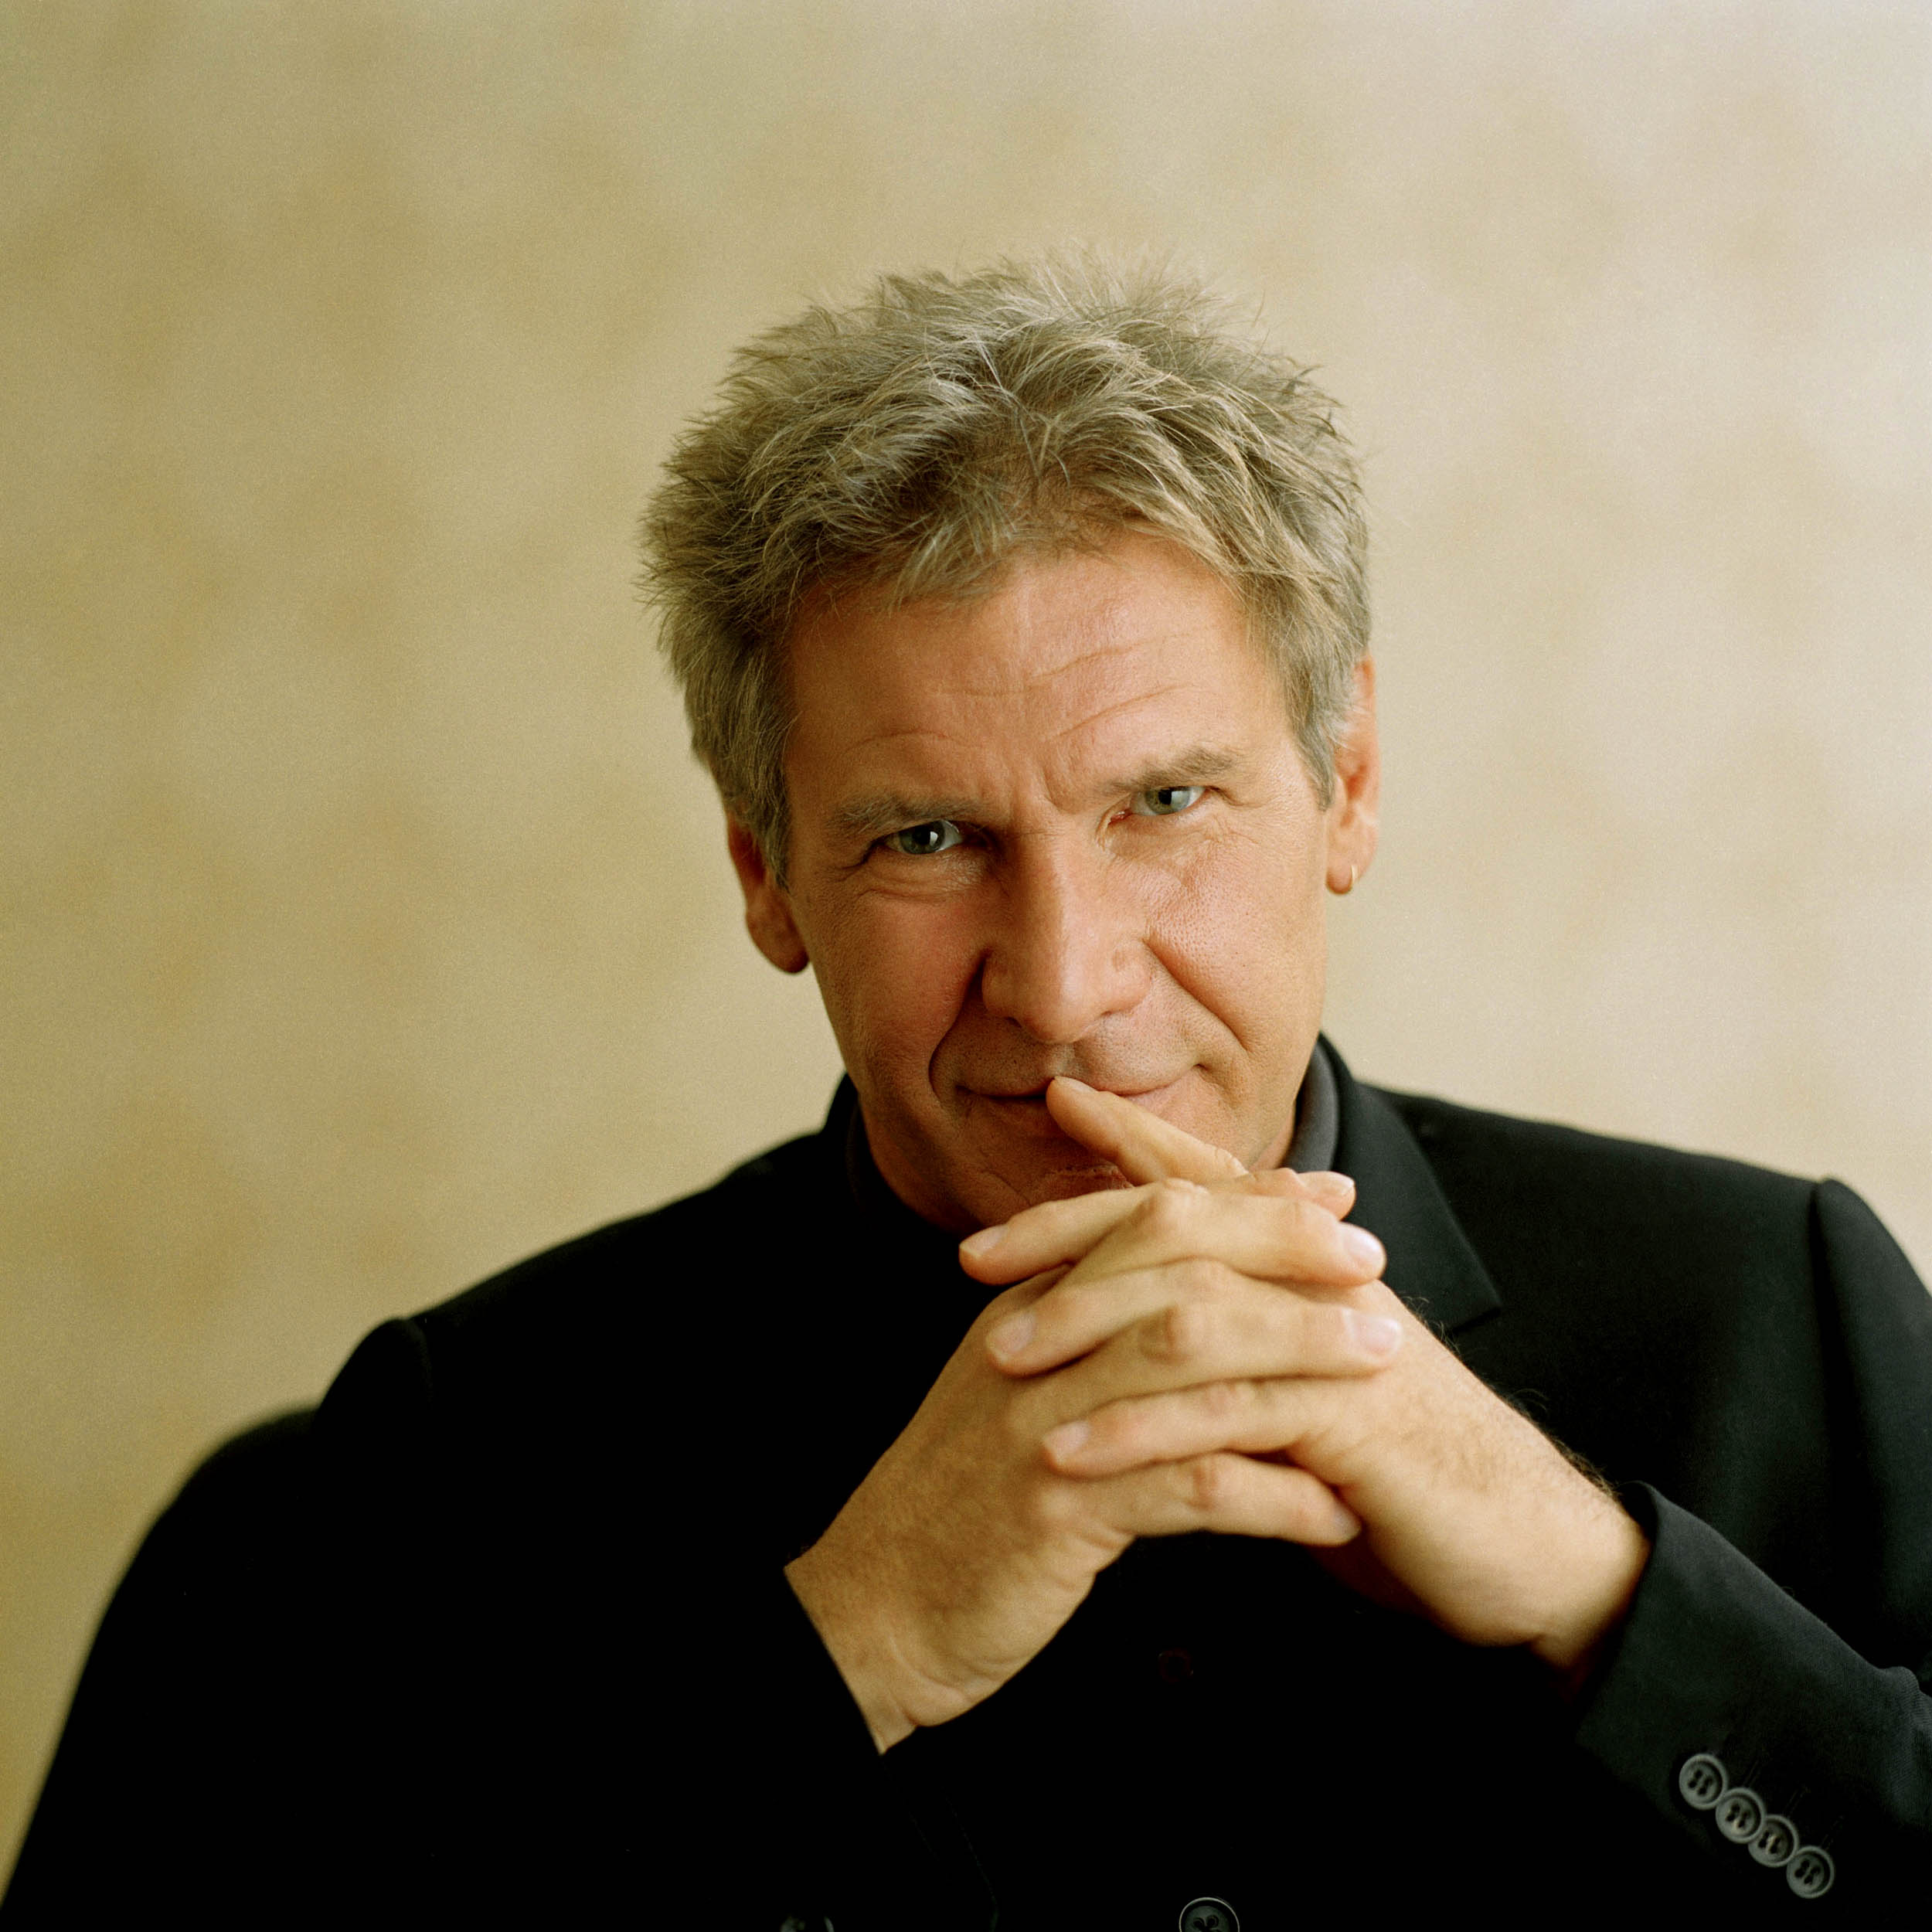 Harrison Ford Wallpaper 9   2500 X 2500 stmednet 2500x2500